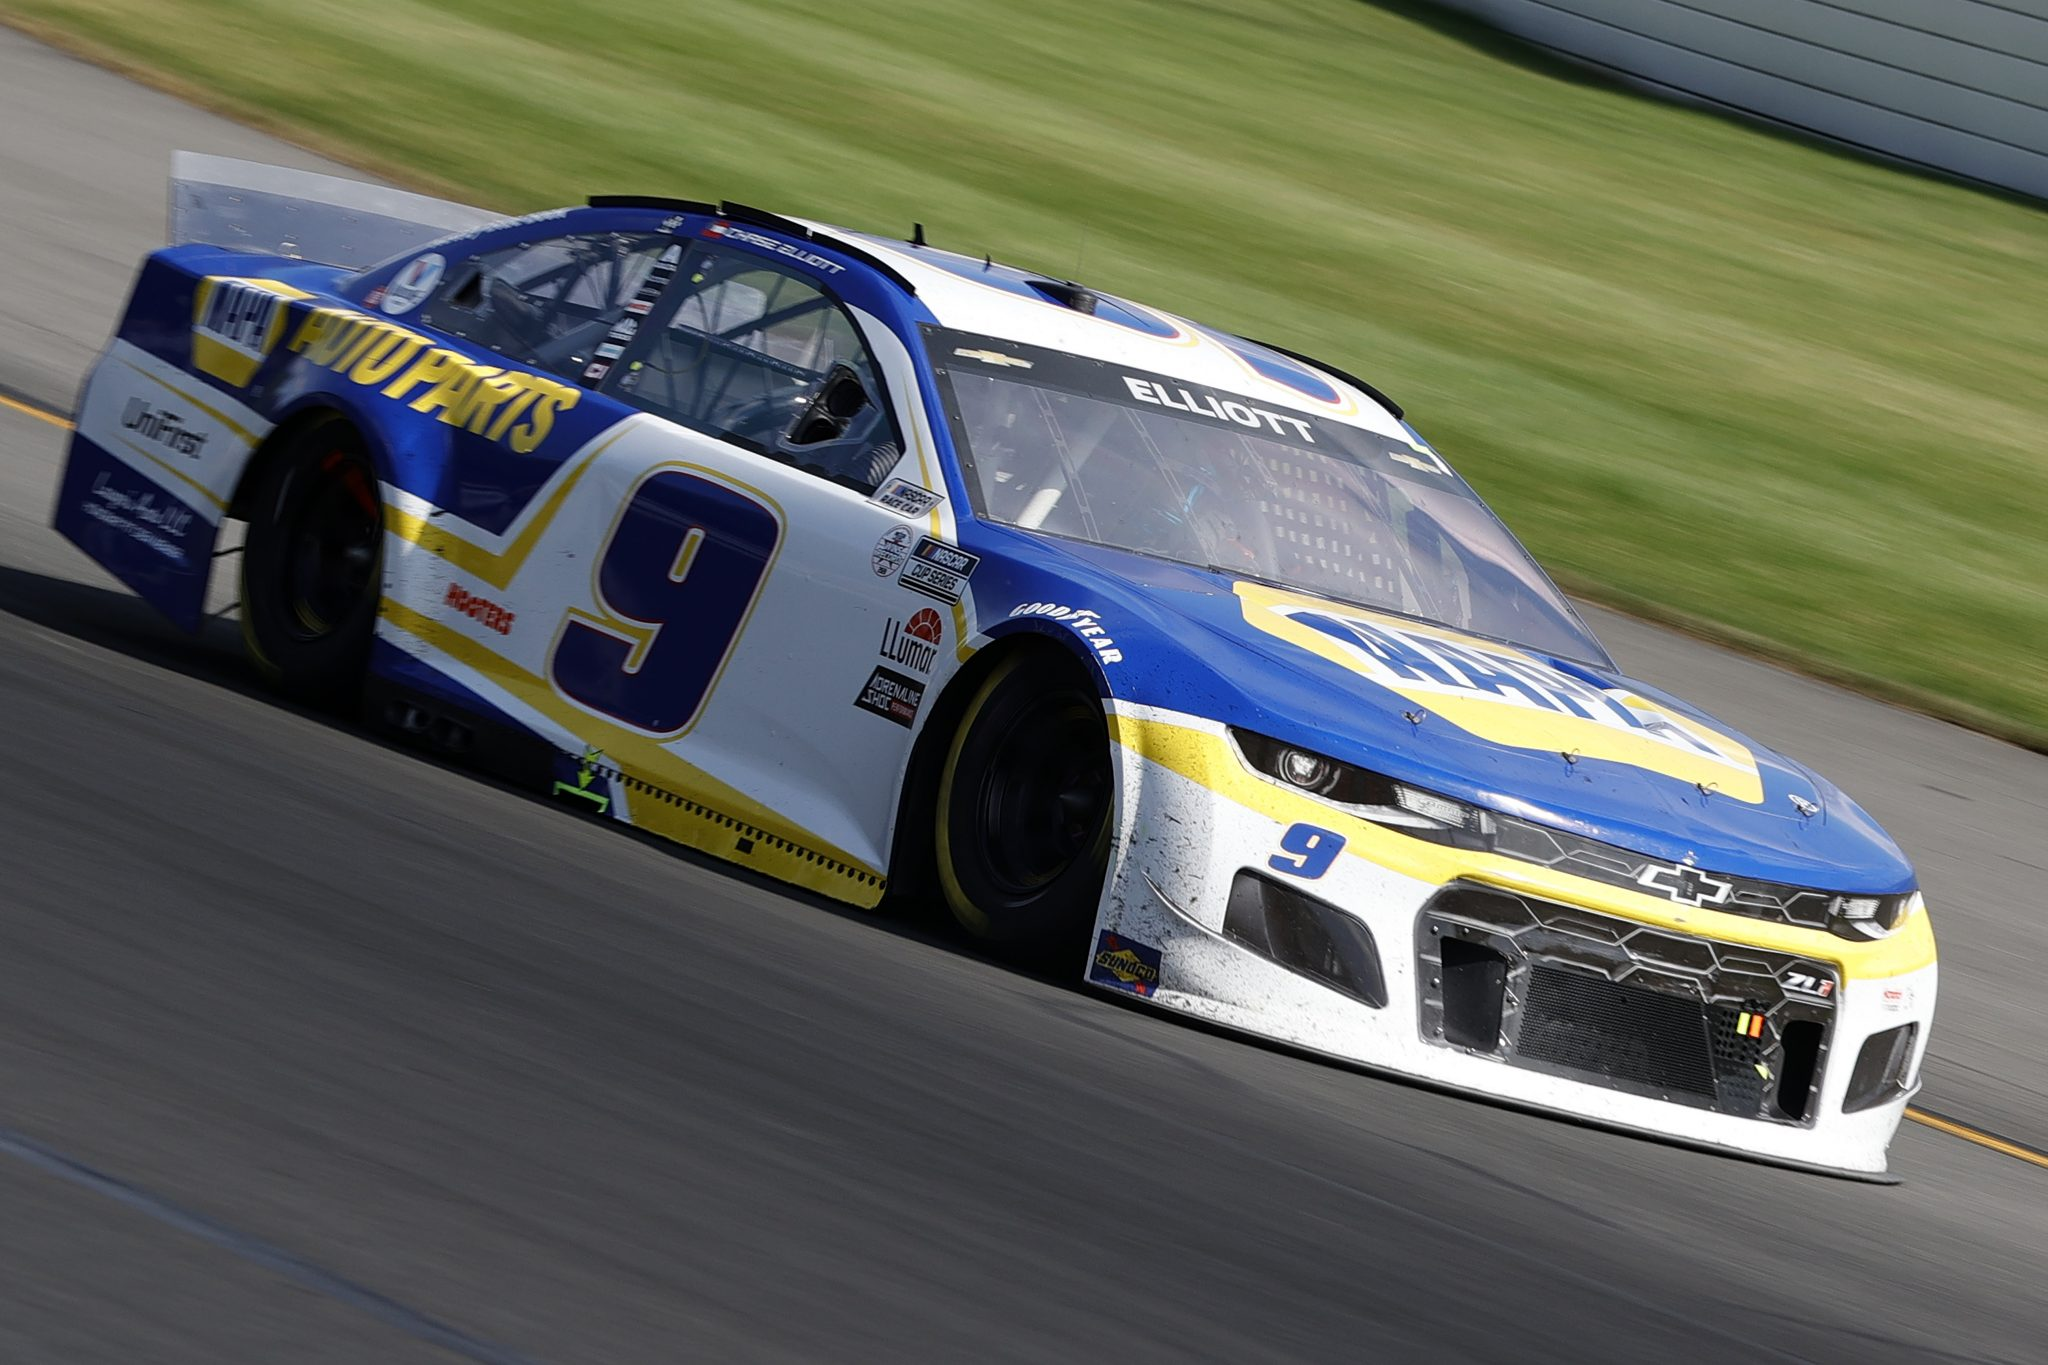 LONG POND, PENNSYLVANIA - JUNE 27: Chase Elliott, driver of the #9 NAPA Auto Parts Chevrolet, drives during the NASCAR Cup Series Explore the Pocono Mountains 350 at Pocono Raceway on June 27, 2021 in Long Pond, Pennsylvania. (Photo by Tim Nwachukwu/Getty Images) | Getty Images